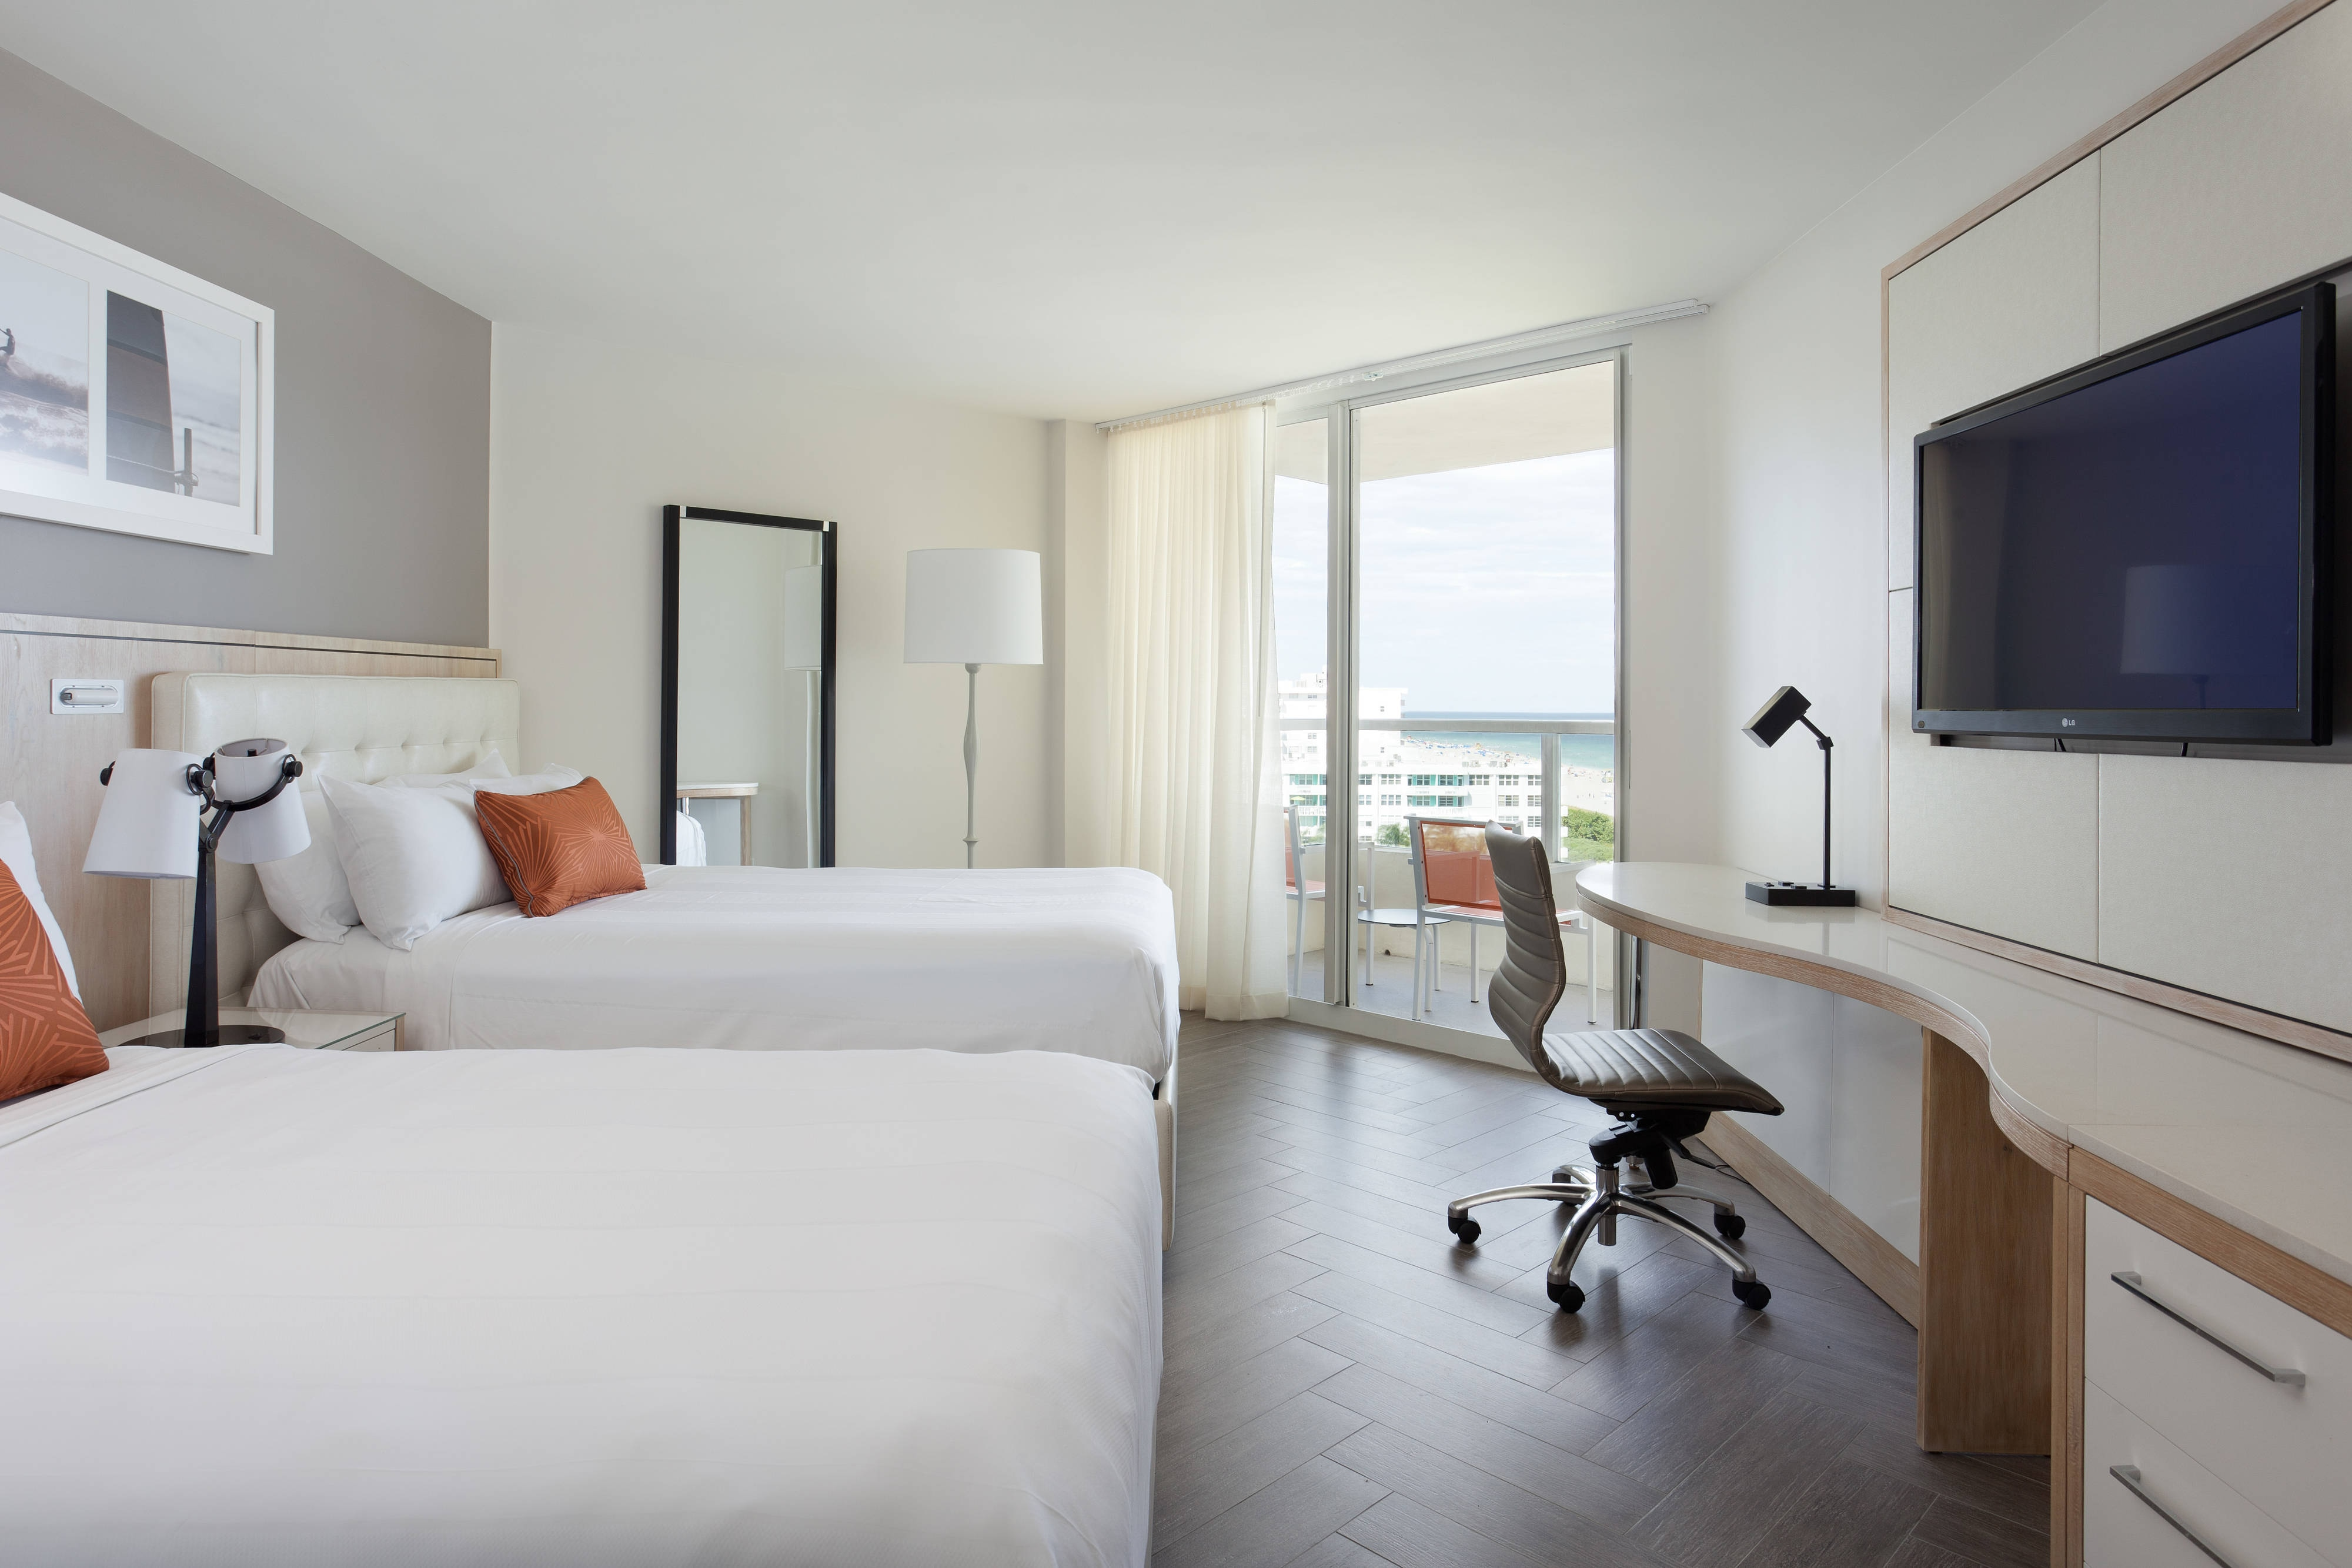 Miami Florida Hotel Rooms